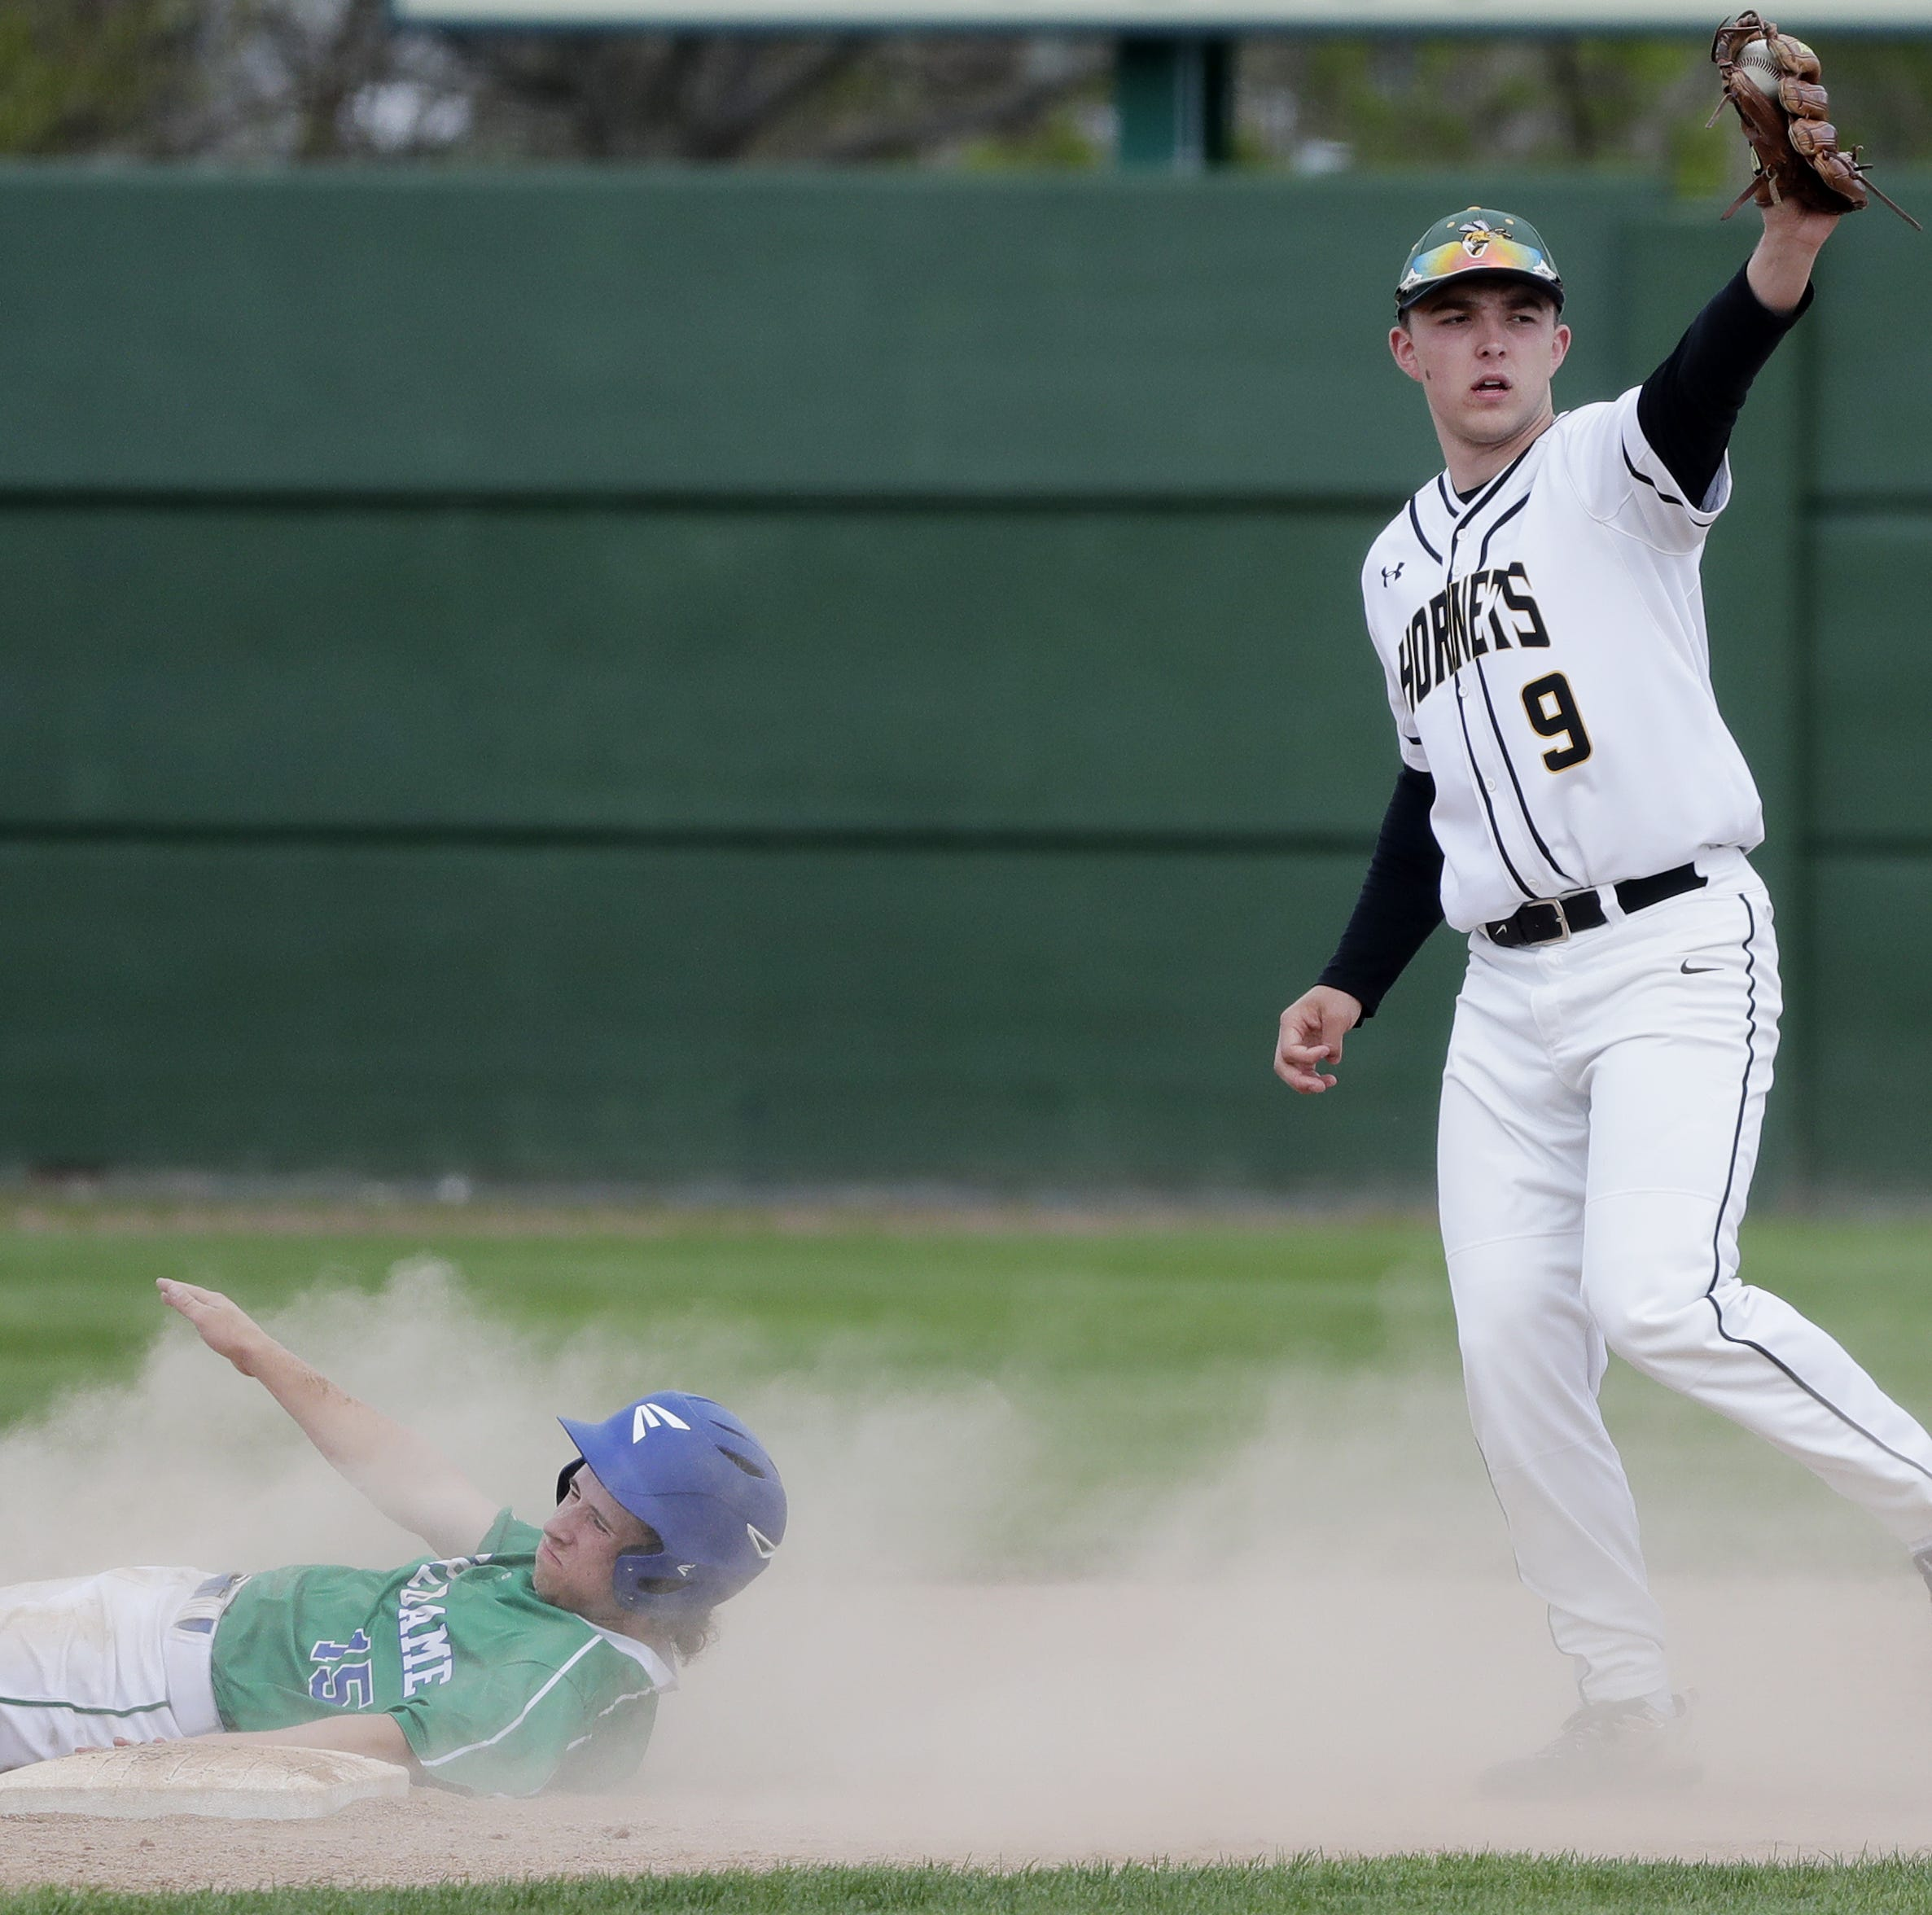 Green Bay Preble's star baseball recruits, best friends have big dreams